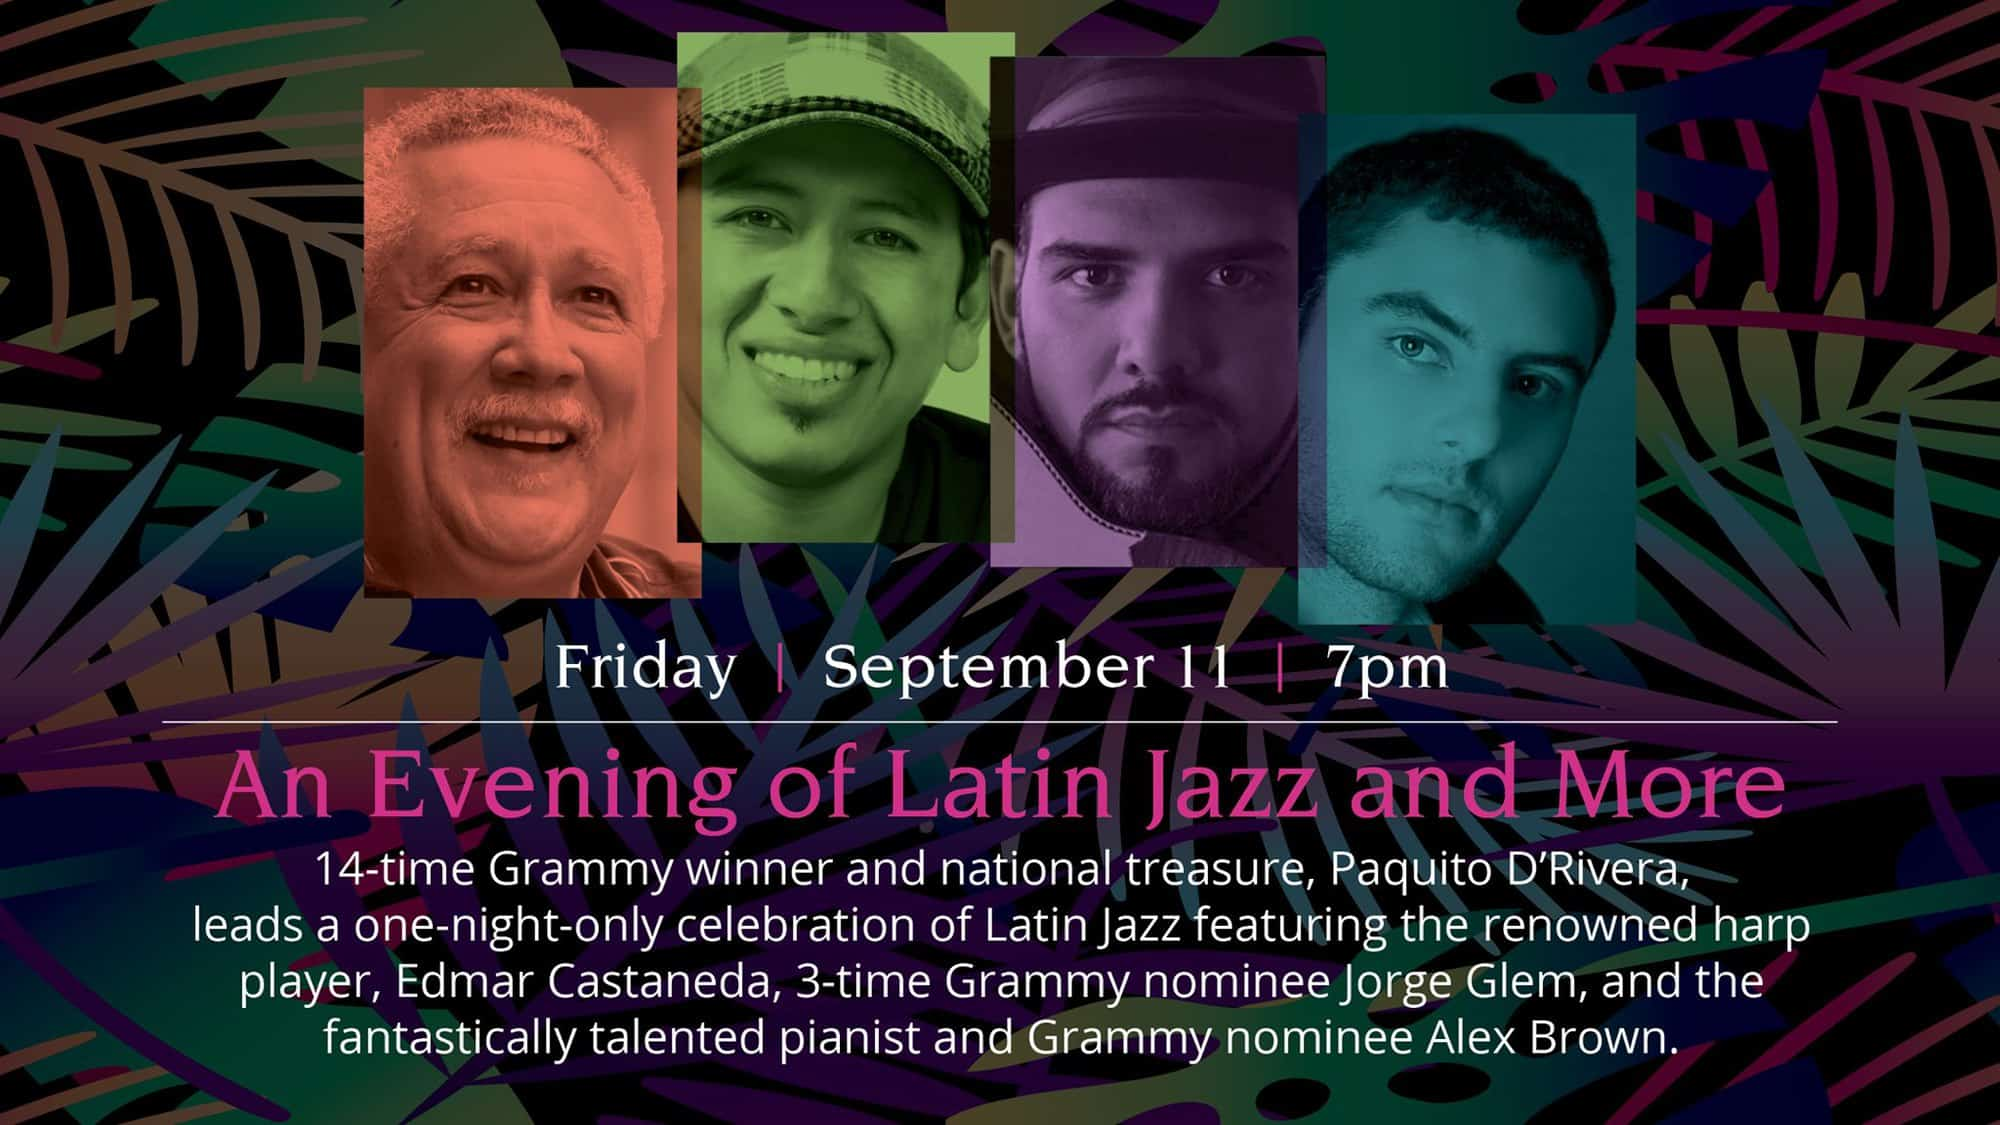 An Evening of Latin Jazz and More